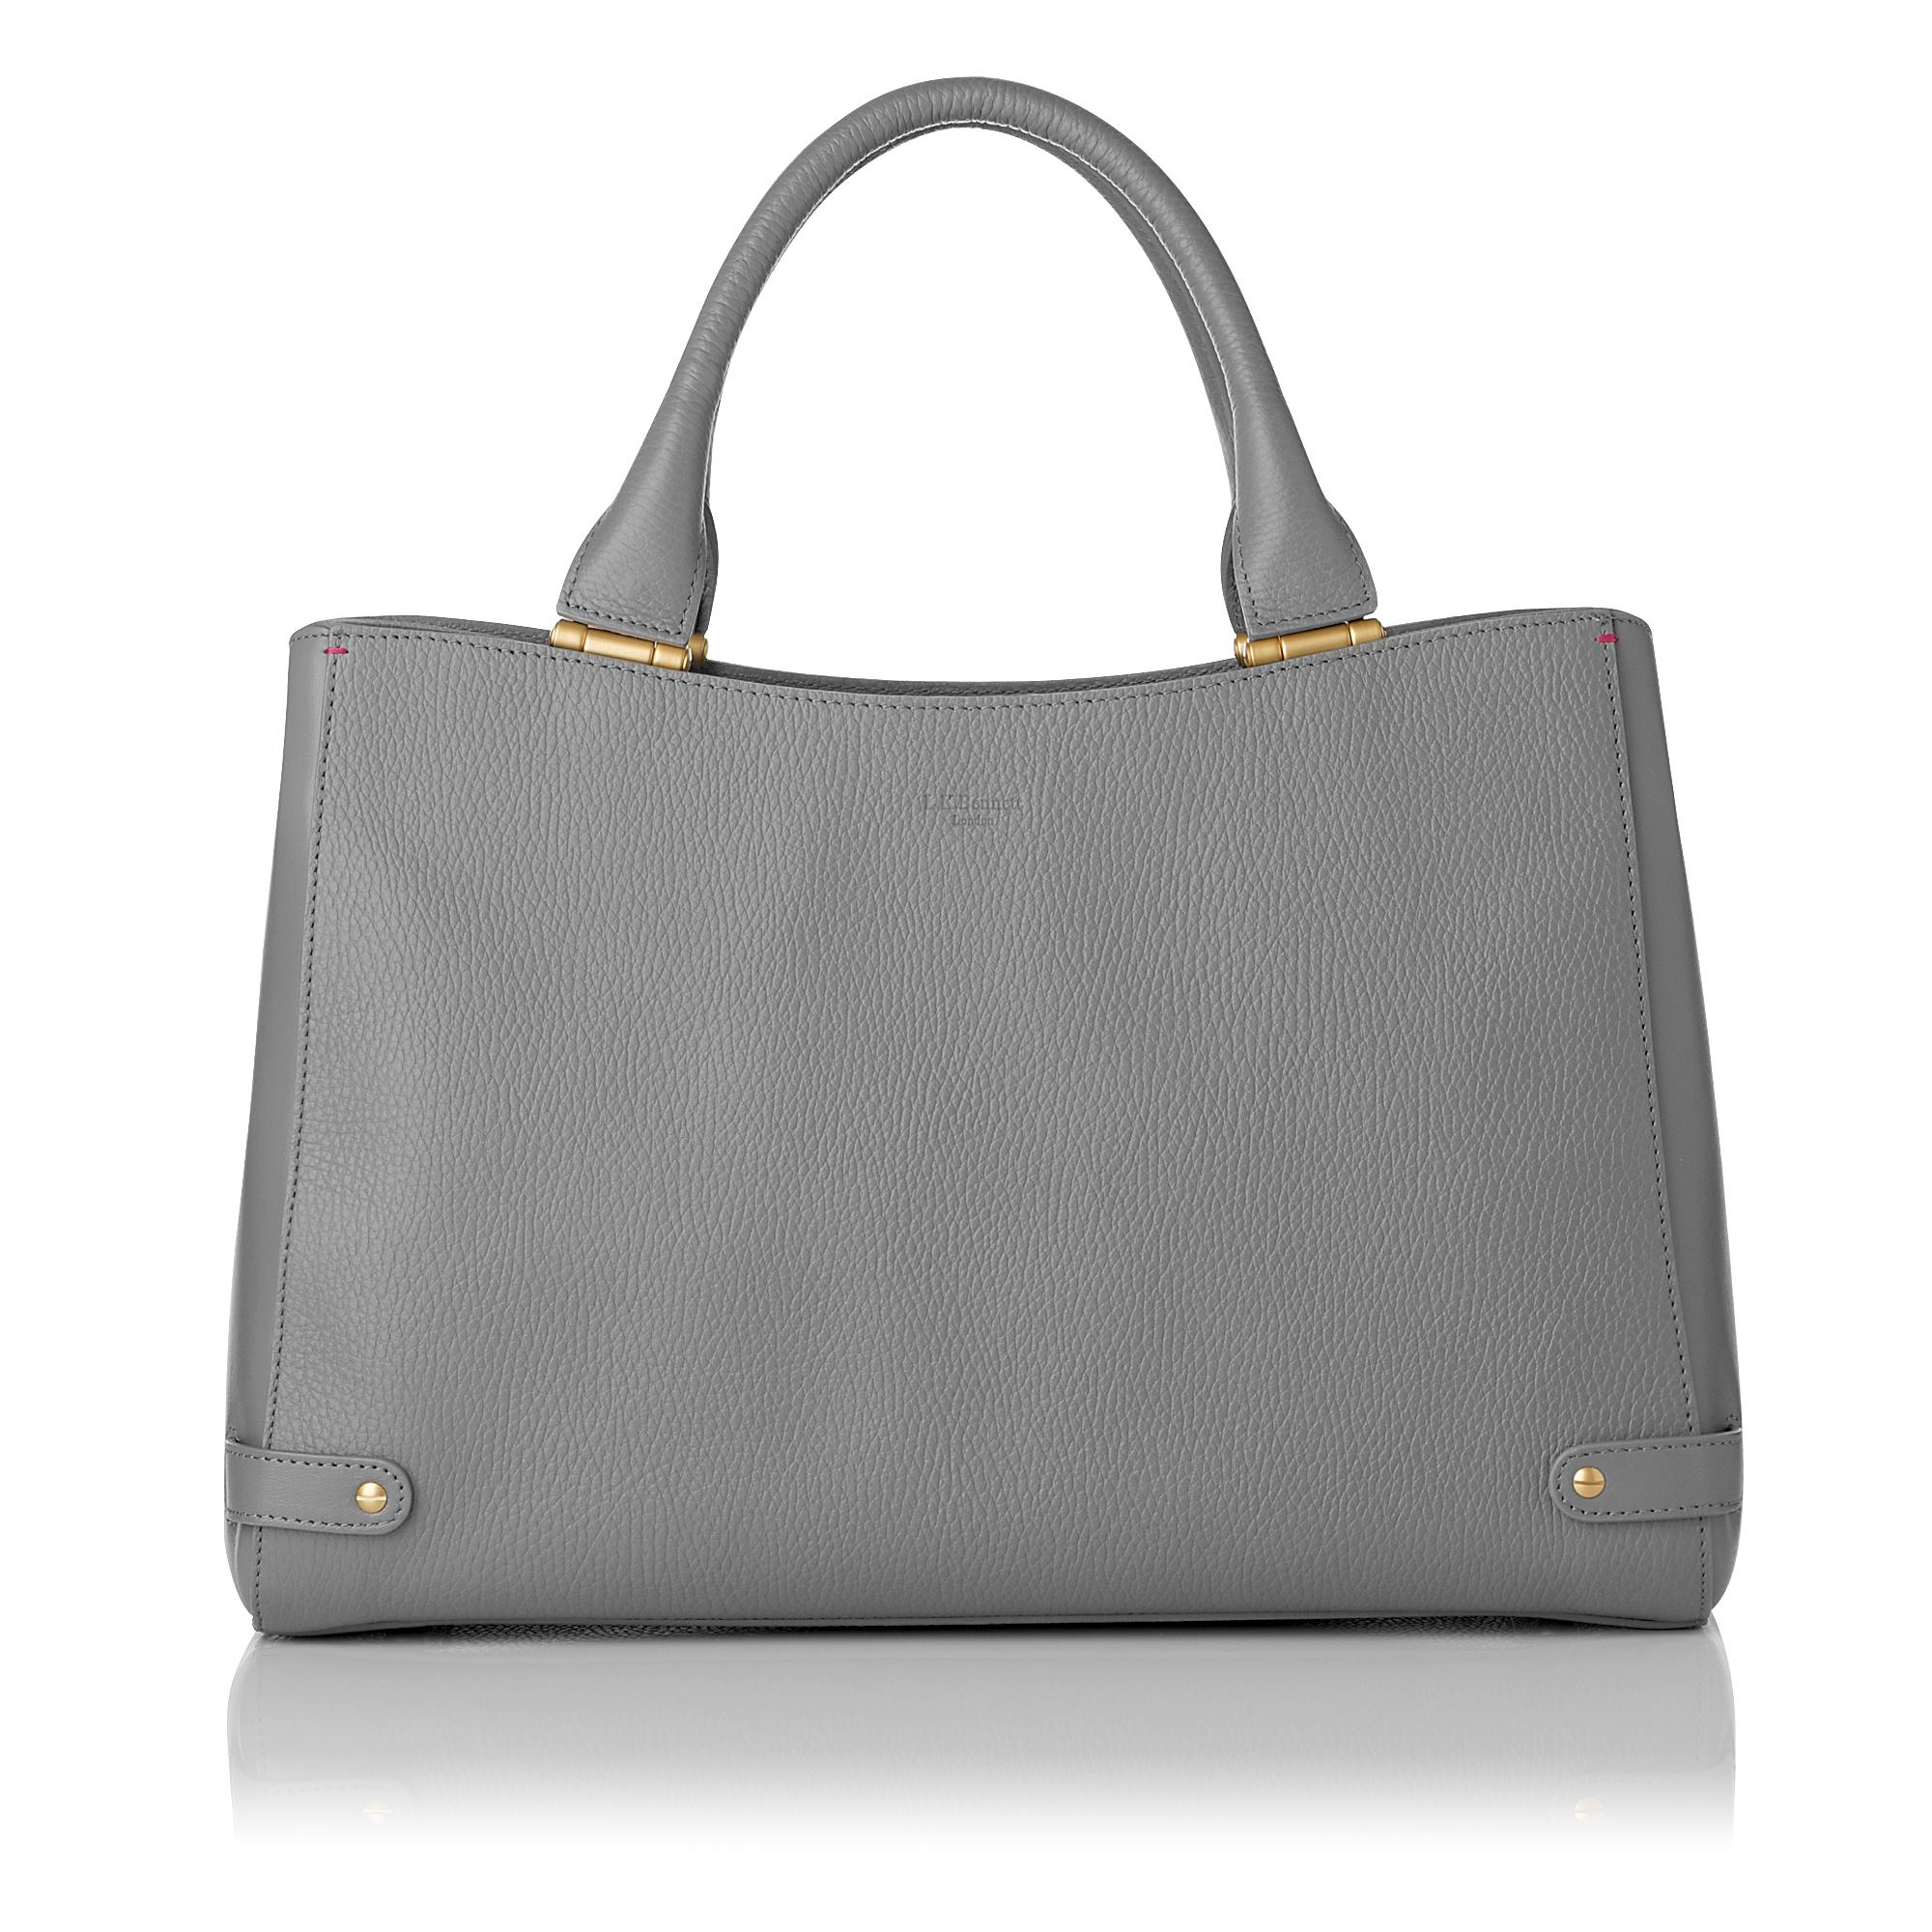 49679fb819165 Jessie Small Leather Tote Bag